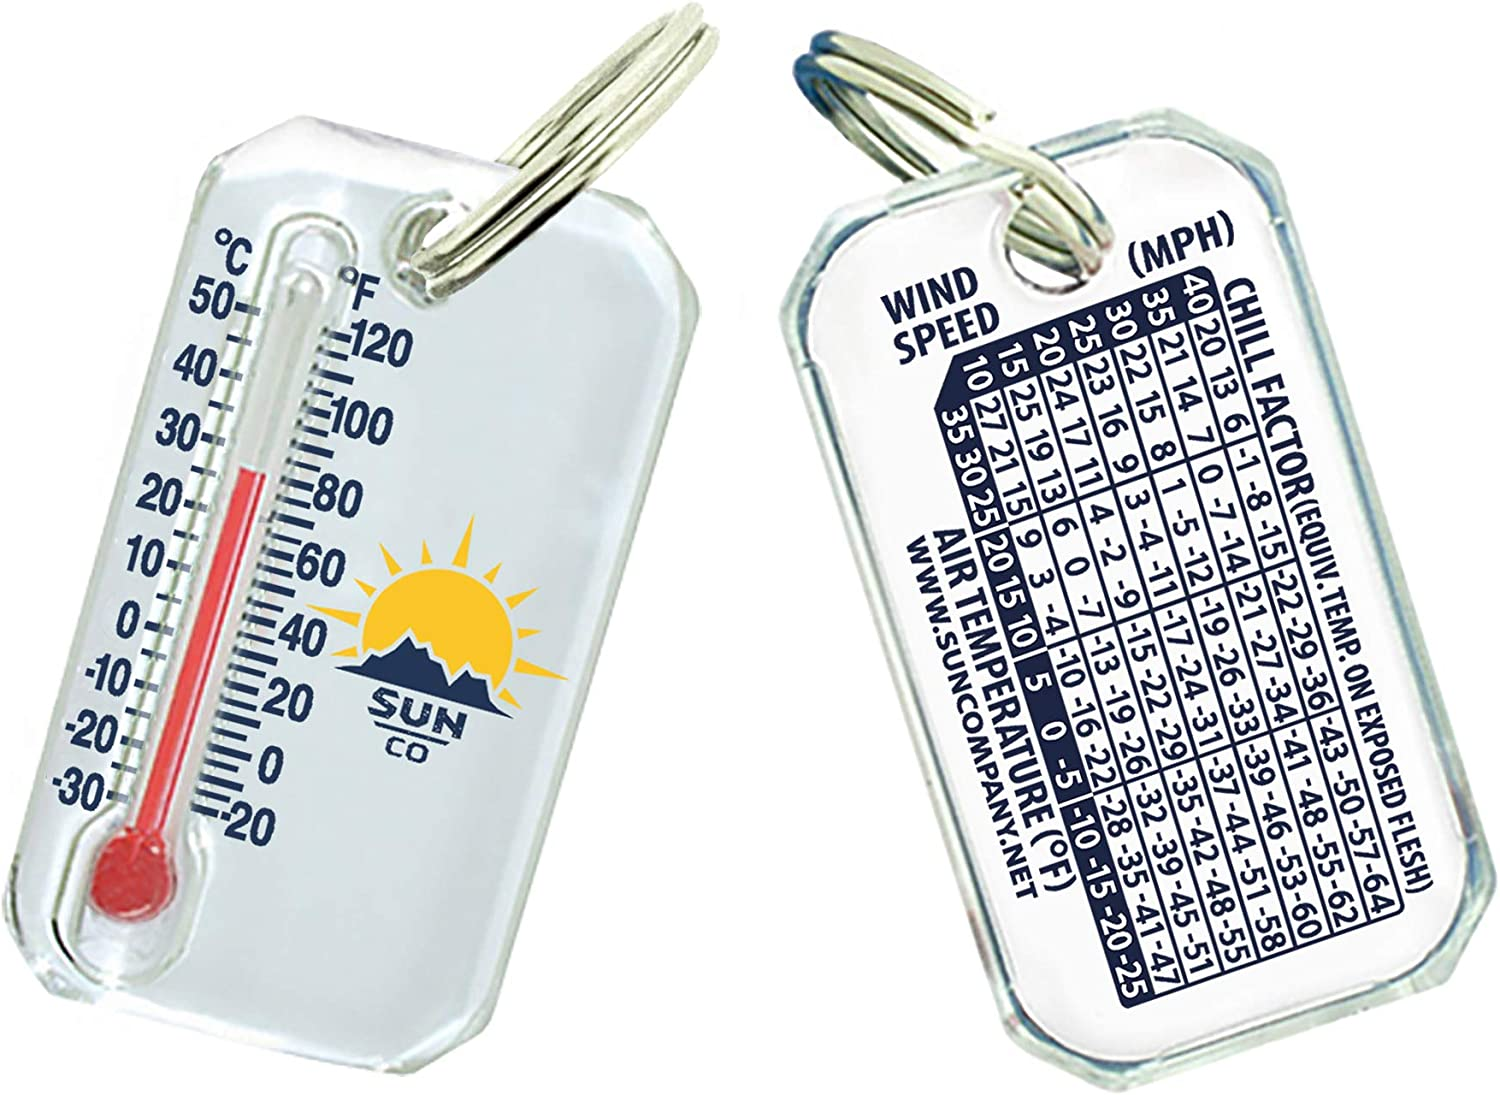 B0000AXQK3 Sun Company Original Zip-o-gage - Zipper-Pull Thermometer for Jacket, Parka, or Backpack | Outdoor Mini Thermometer Key Chain with Windchill Chart on Back 814-xs4dfrL